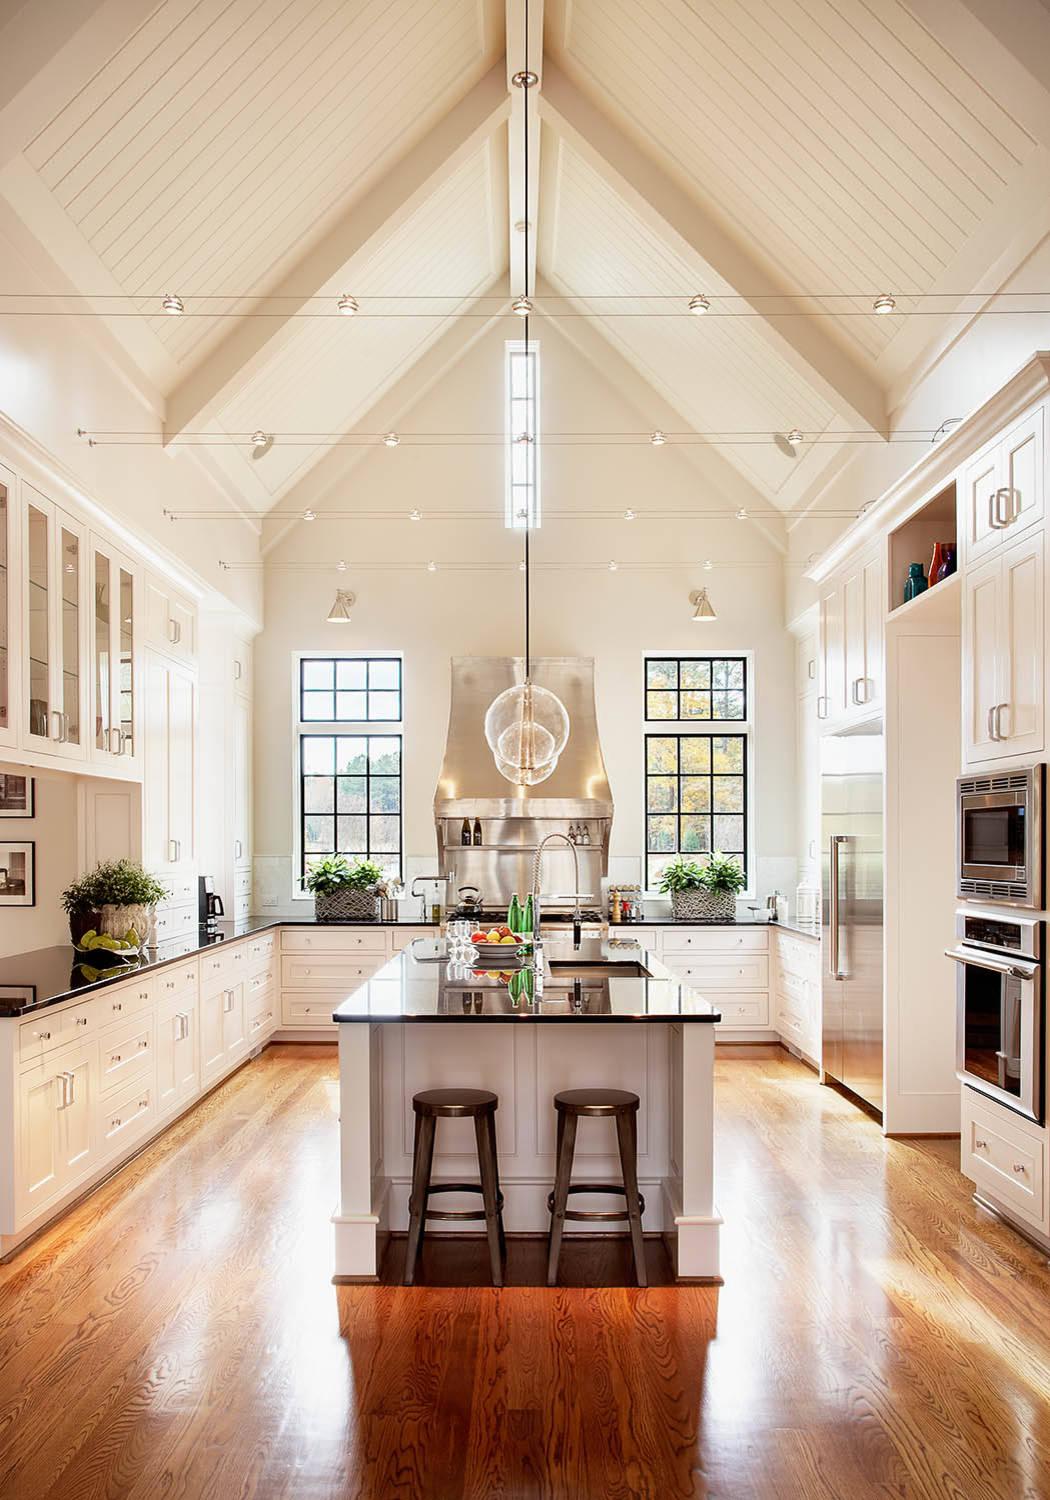 Black and White Kitchen Traditional Kitchen Wood Floors Vaulted Ceiling Wall Mounted Oven Cathedral Ceiling